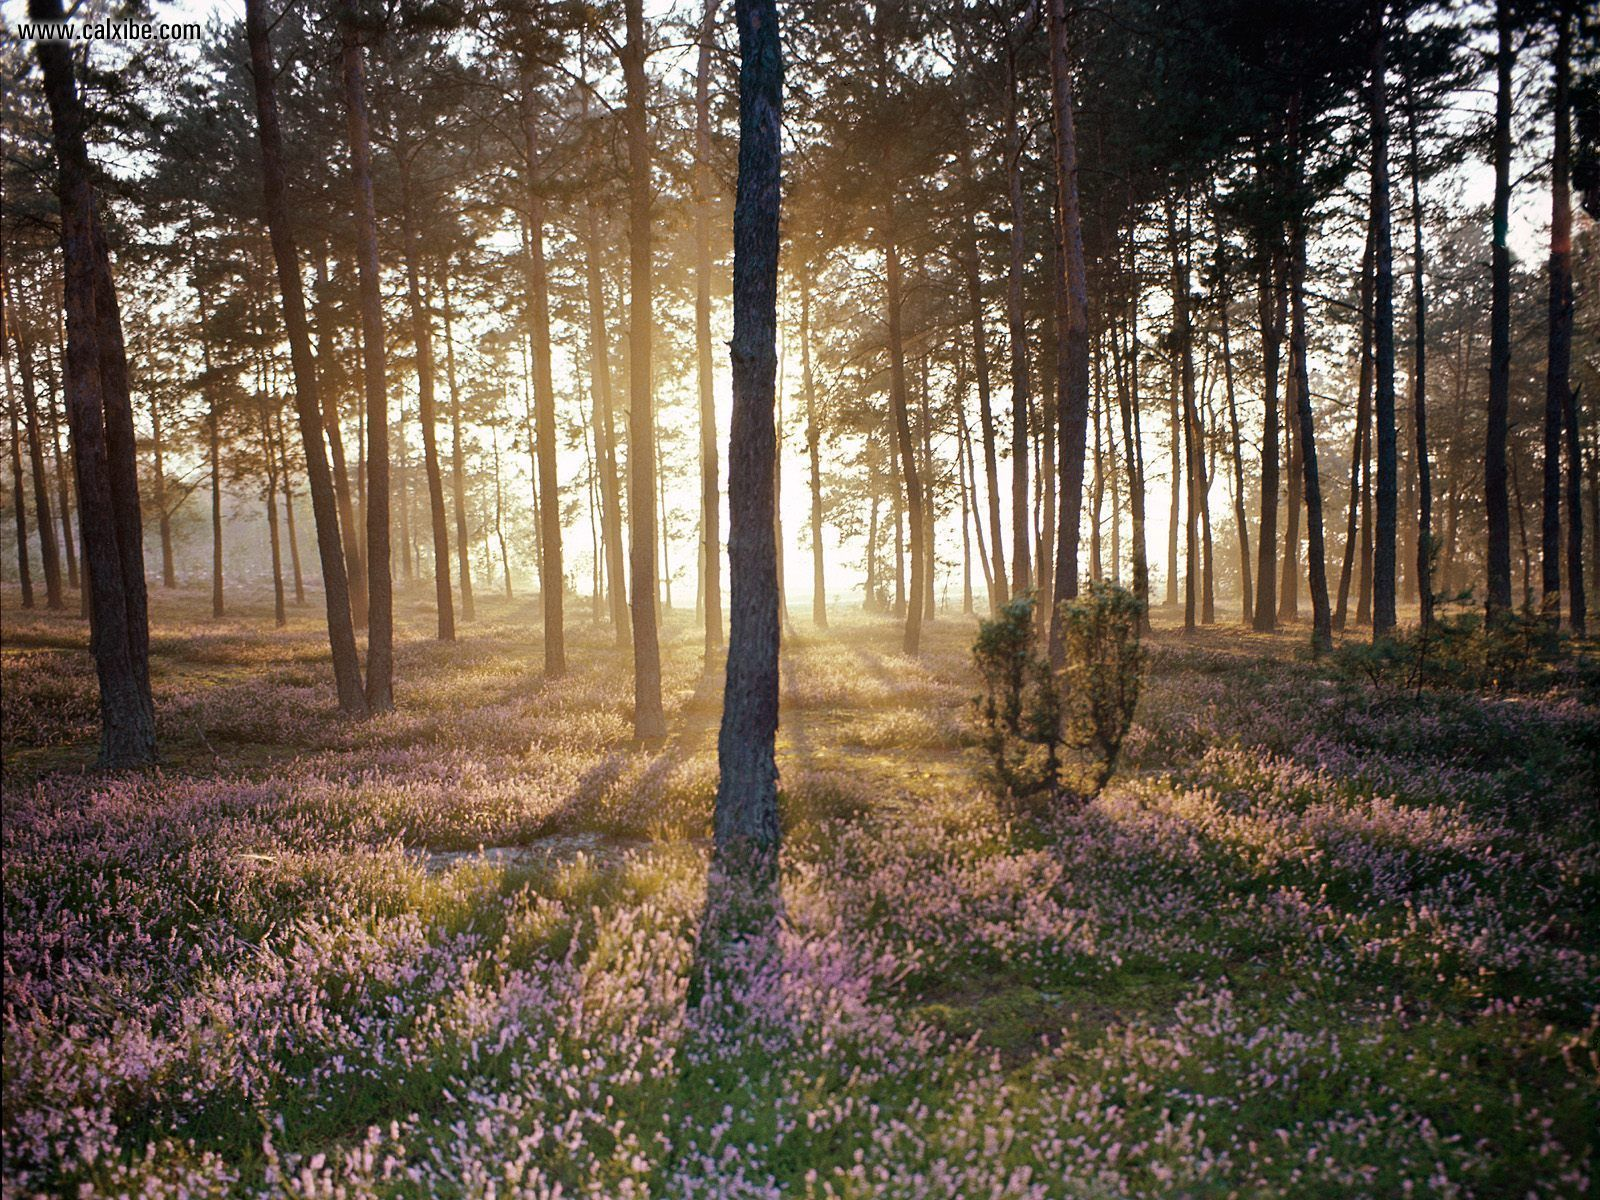 Nature: Sunlight And The Wild Forest Floor, picture nr. 17763